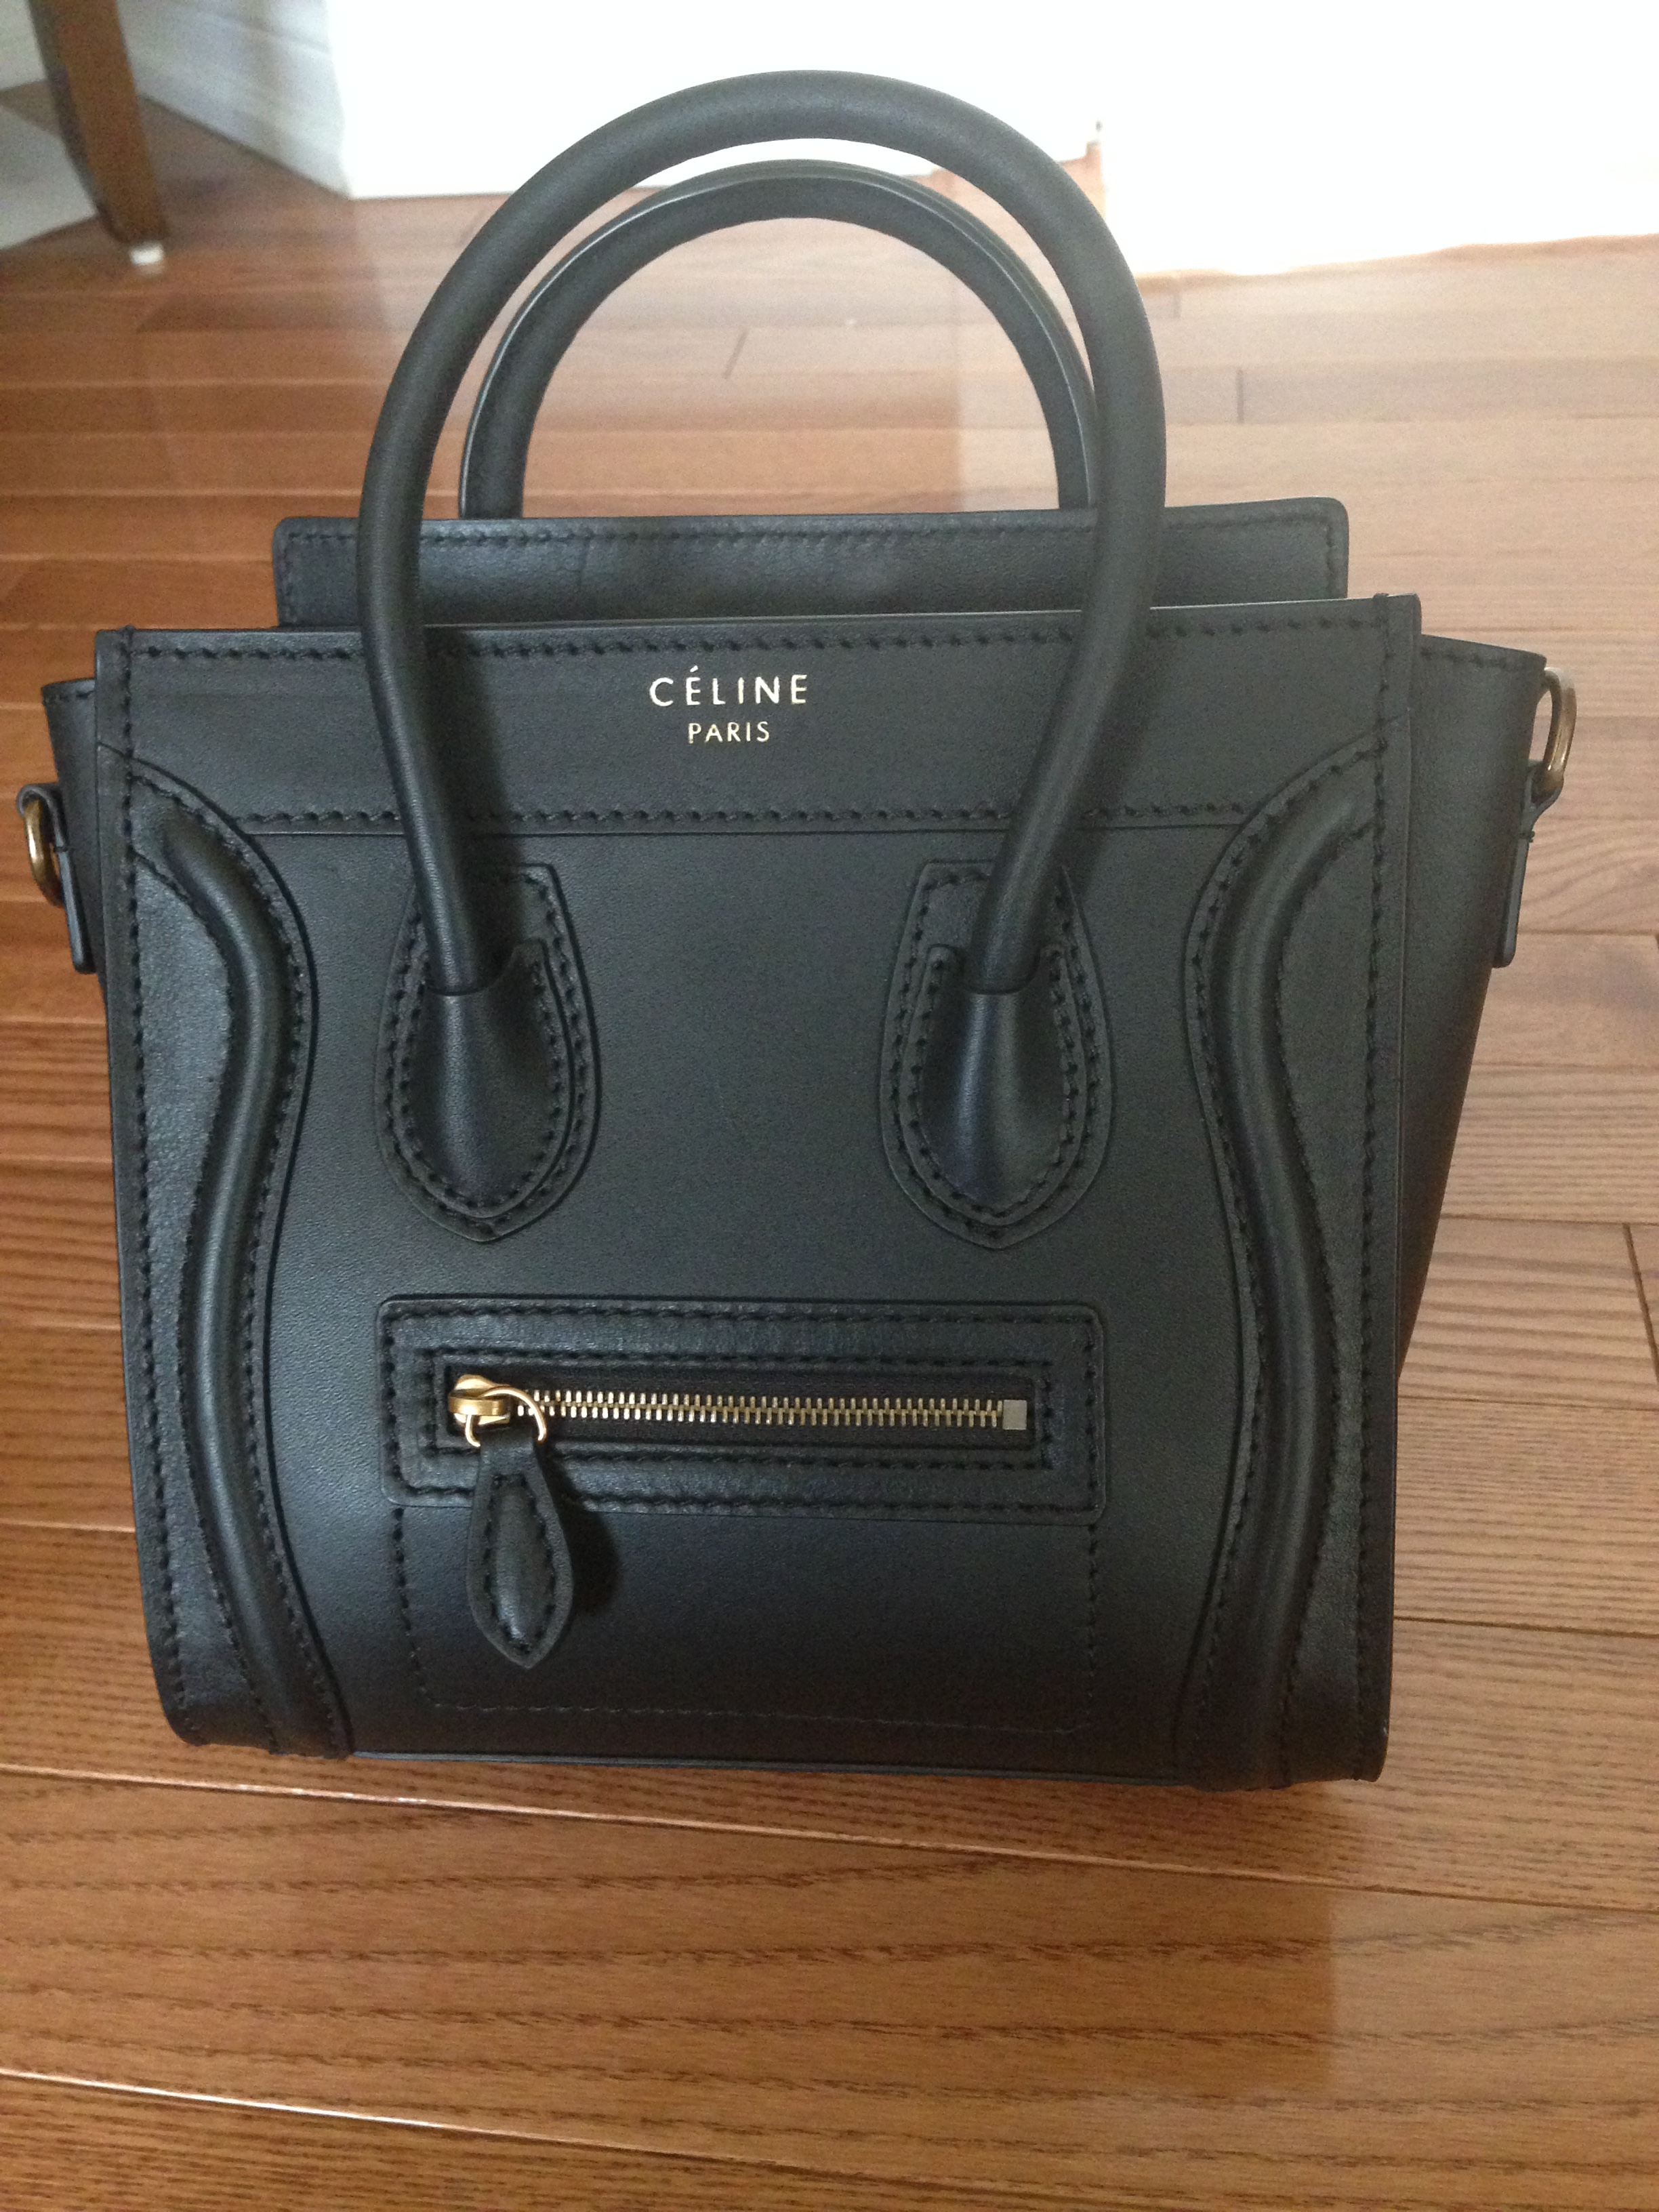 replica celine luggage celine shoulder bag. Black Bedroom Furniture Sets. Home Design Ideas